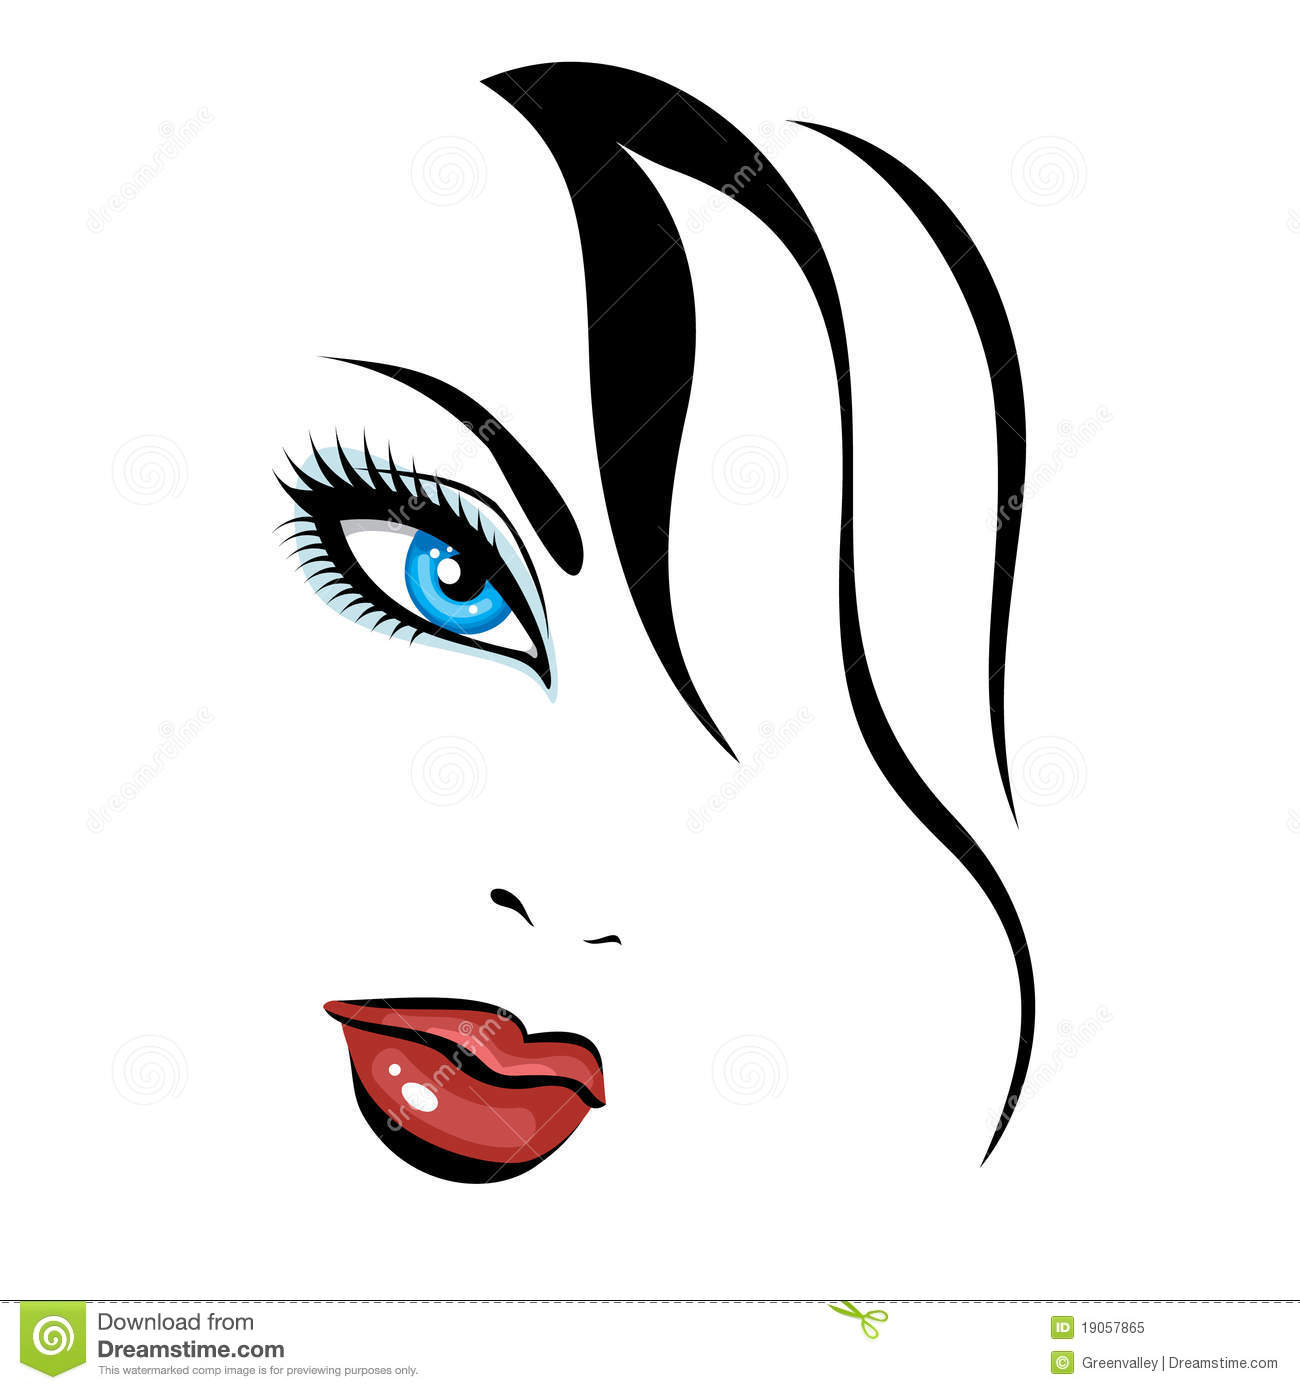 1000  images about beauty clip art on Pi-1000  images about beauty clip art on Pinterest | Nail art, Spotlight and Pedicures-8